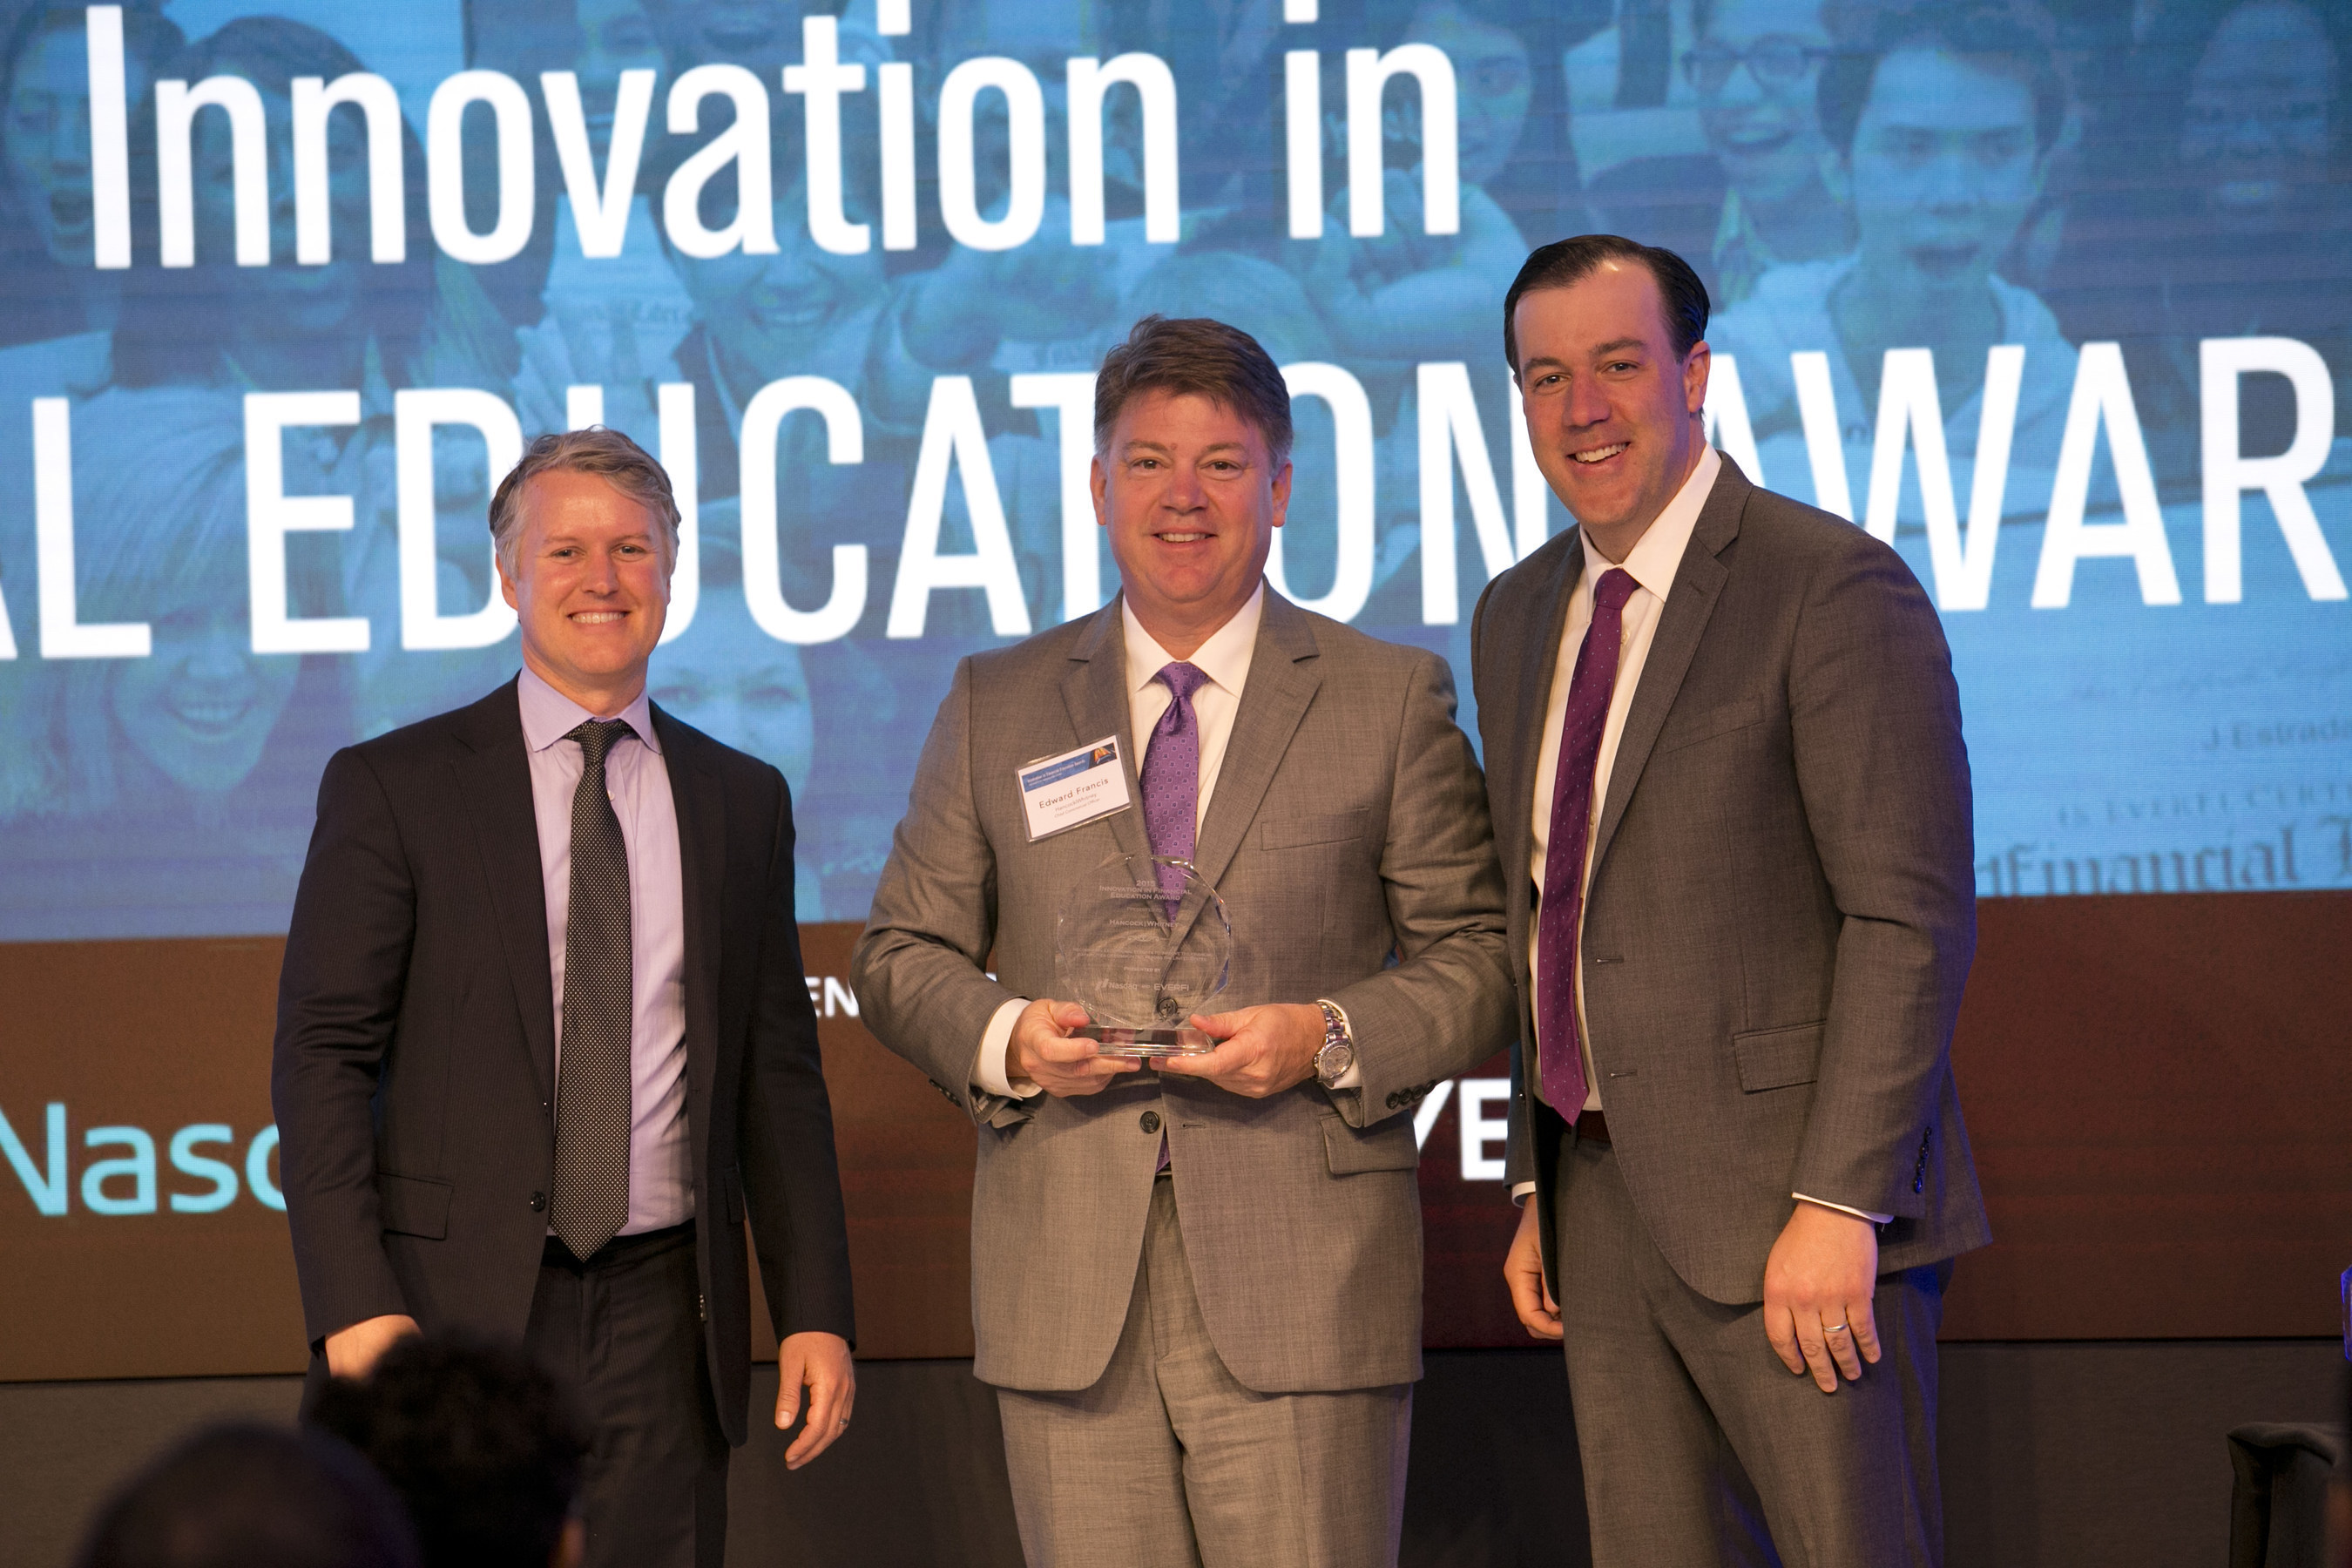 Hancock Holding Company Chief Banking Officer Edward G. Francis (center) accepts the Innovation in Financial Education Award from EverFi, Inc., co-founders CEO Tom Davidson (left) and Chief Strategy Officer Jon Chapman at Nasdaq's Marketsite headquarters in New York City.